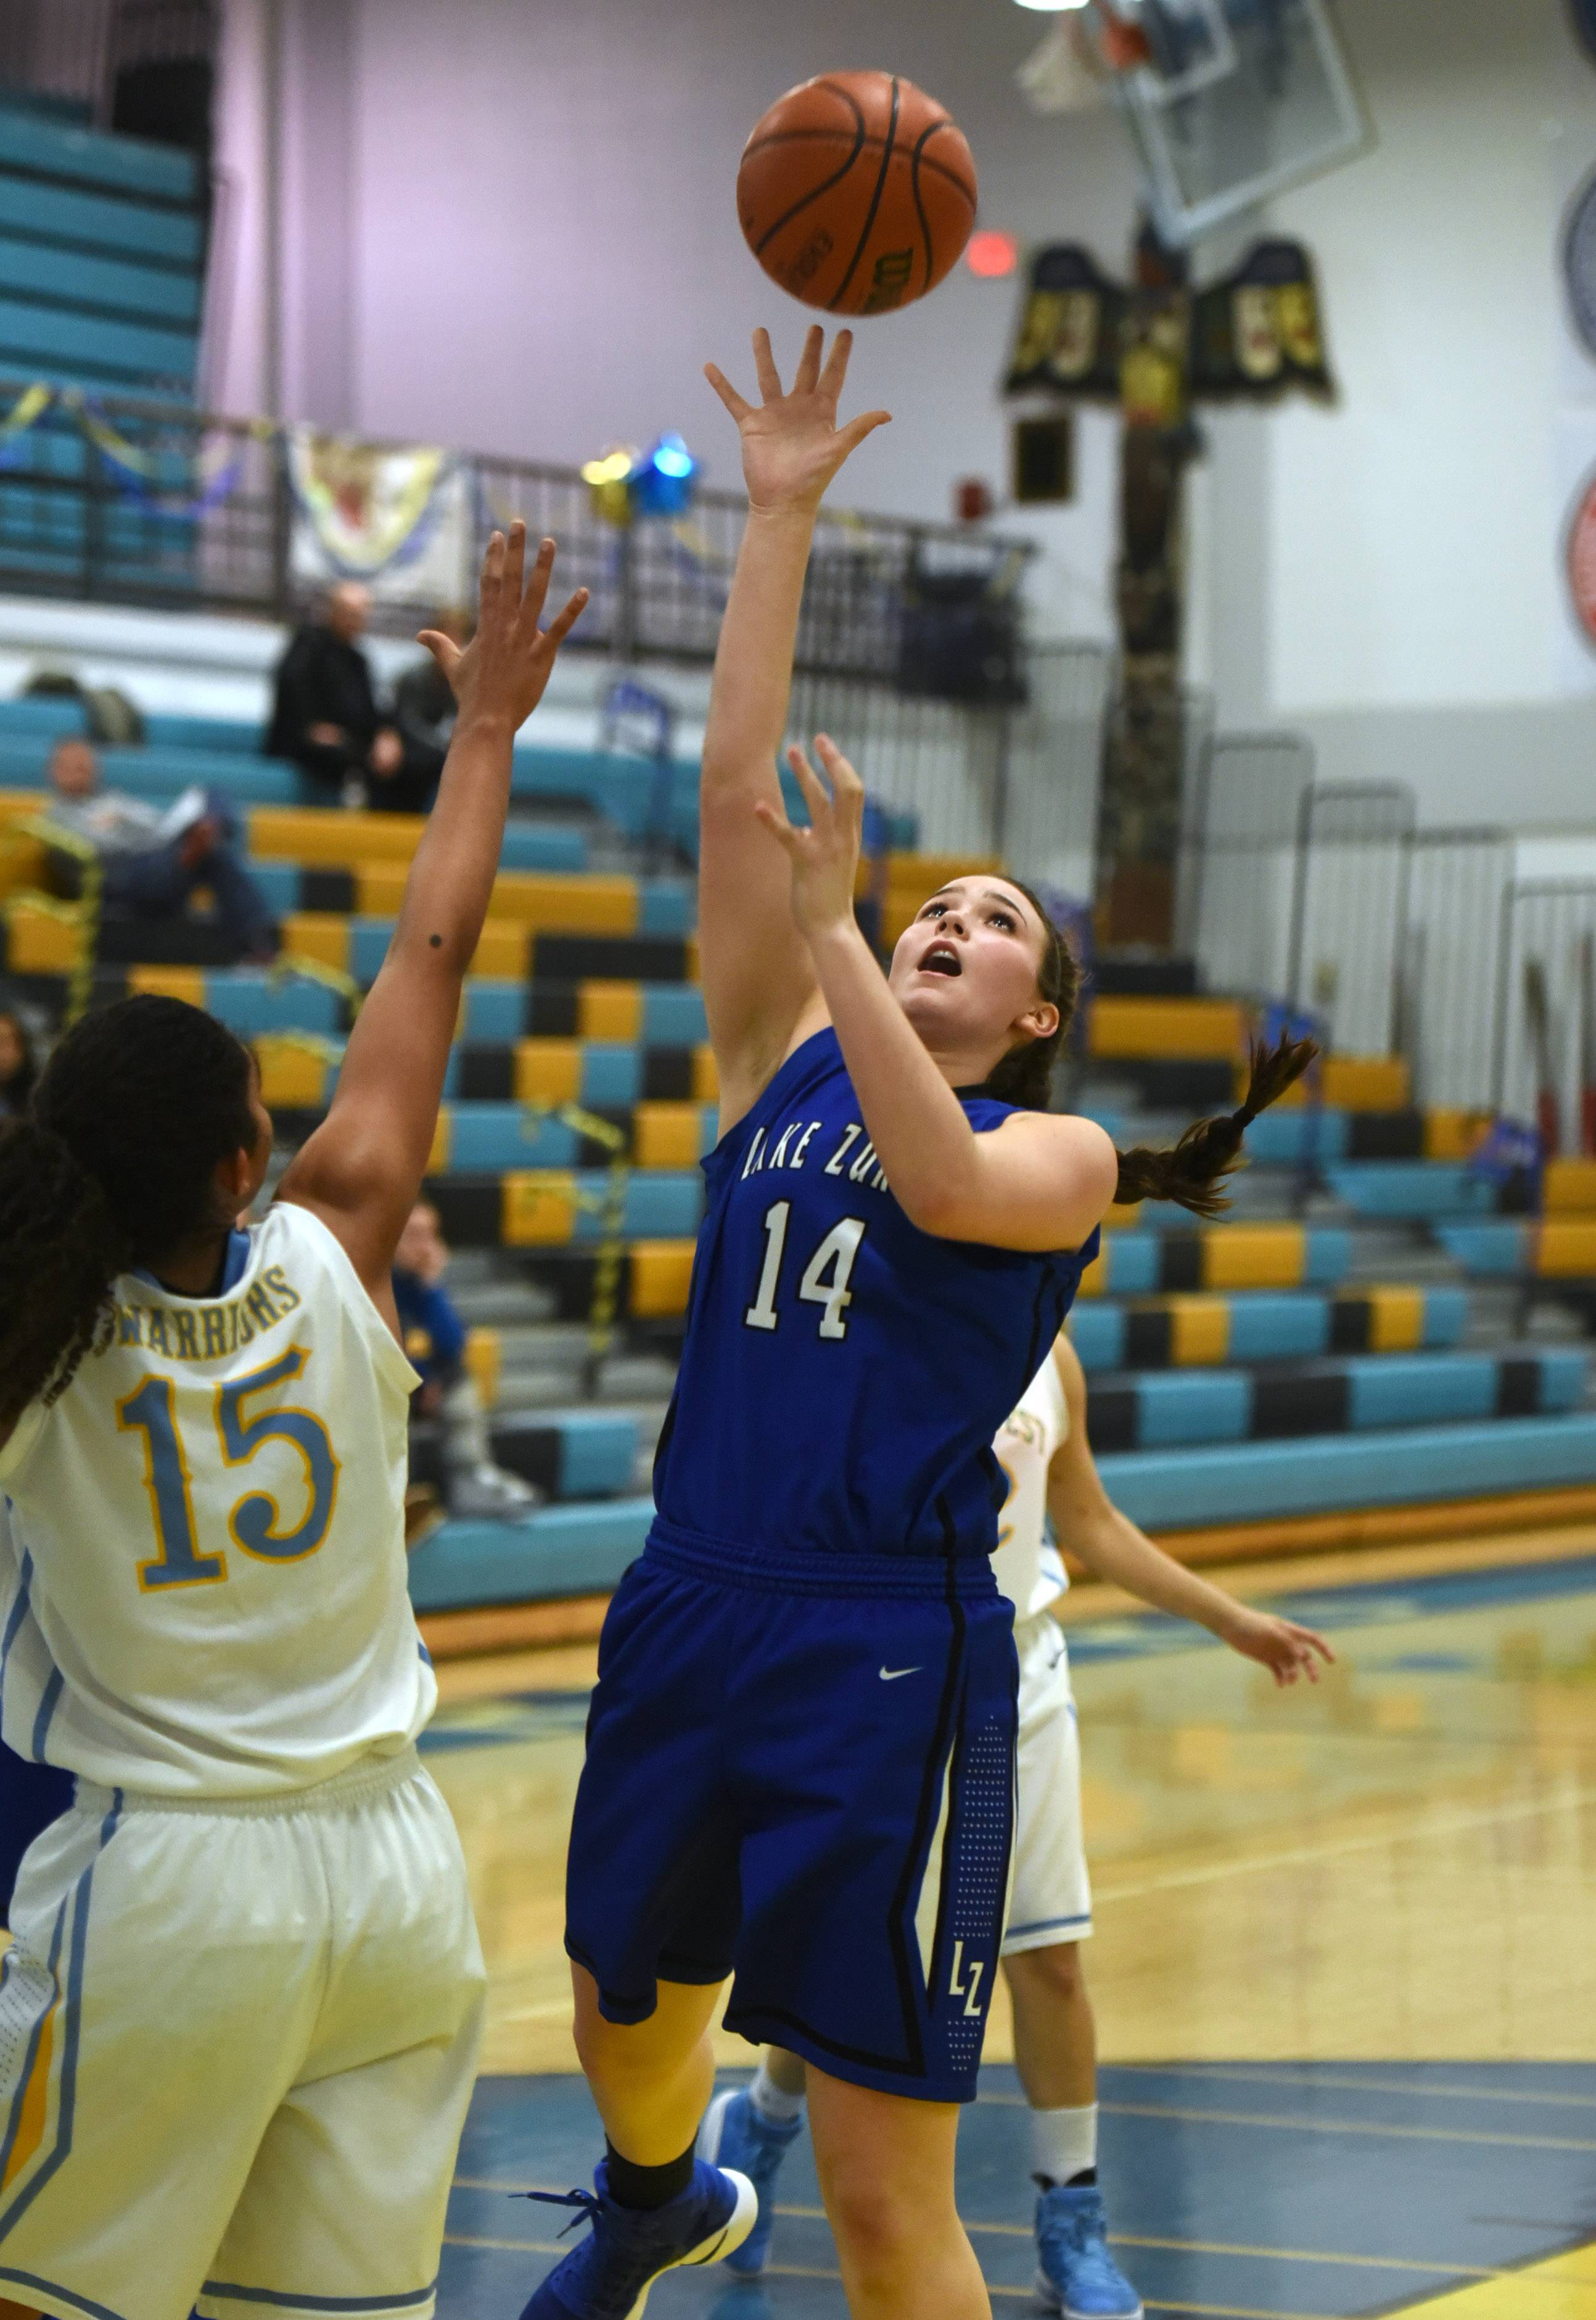 Lake Zurich's McKenna Zobel (14) takes a shot over Maine West's Rachel Kent (15) during Monday's girls basketball game in Des Plaines.